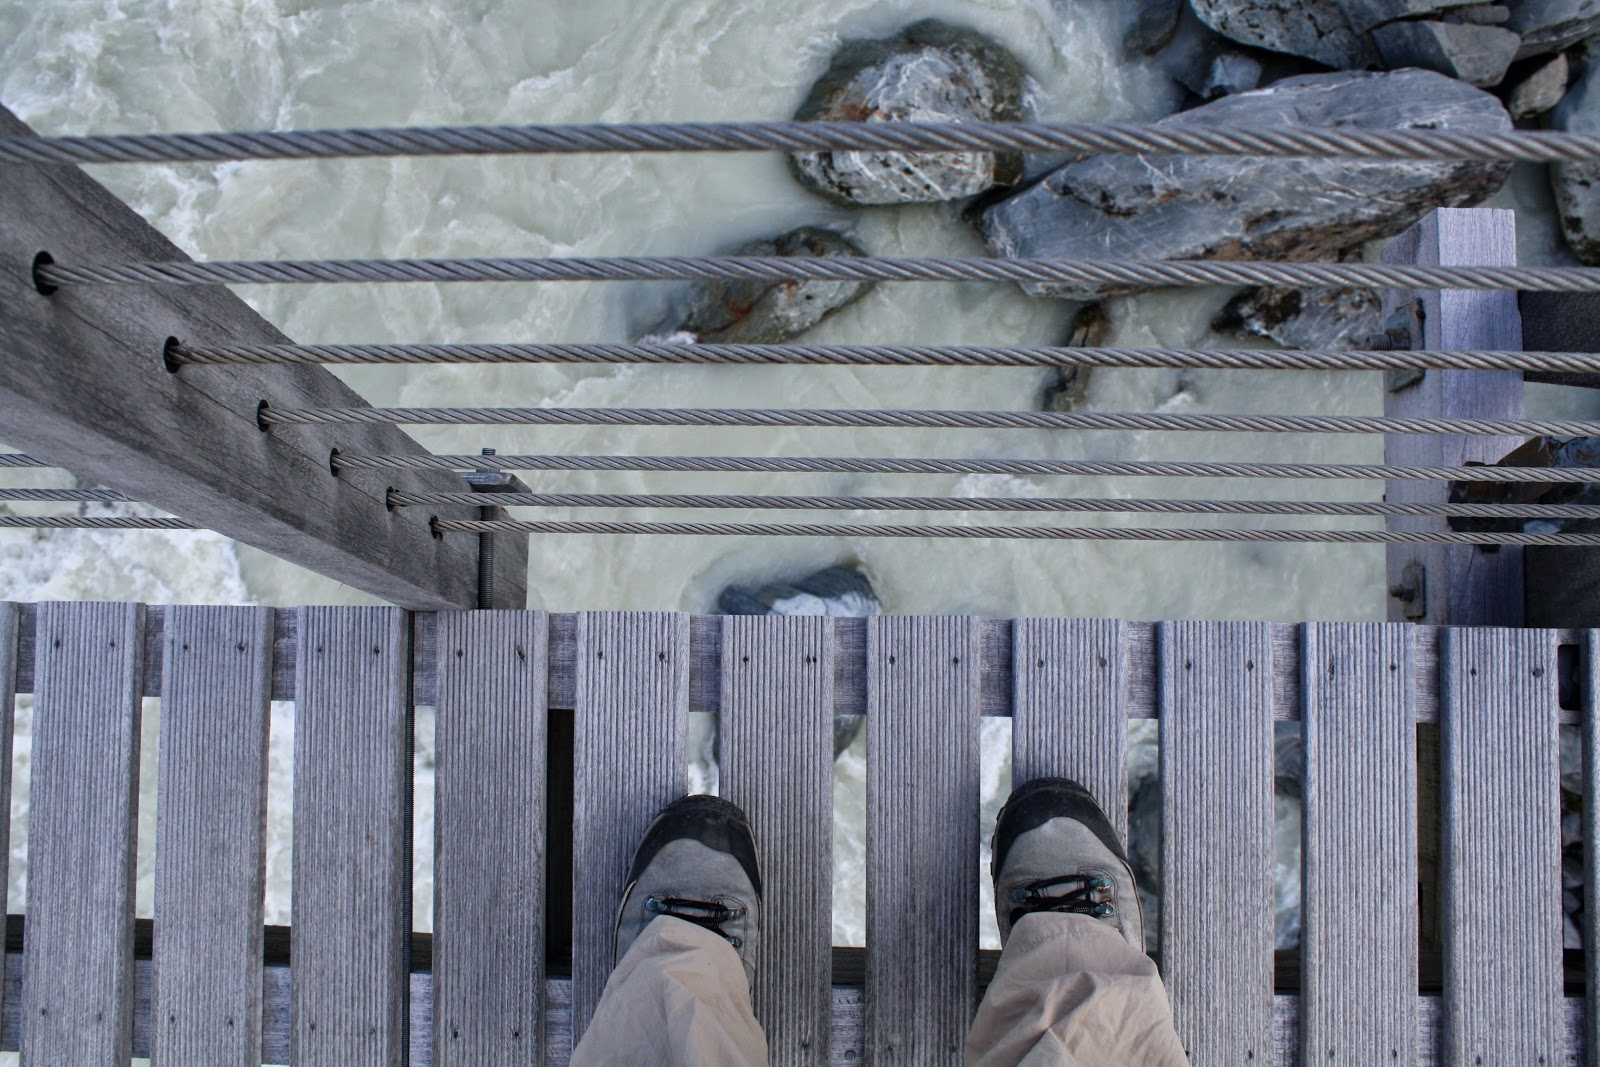 Looking down at my feet on a suspension bridge, the river far below.